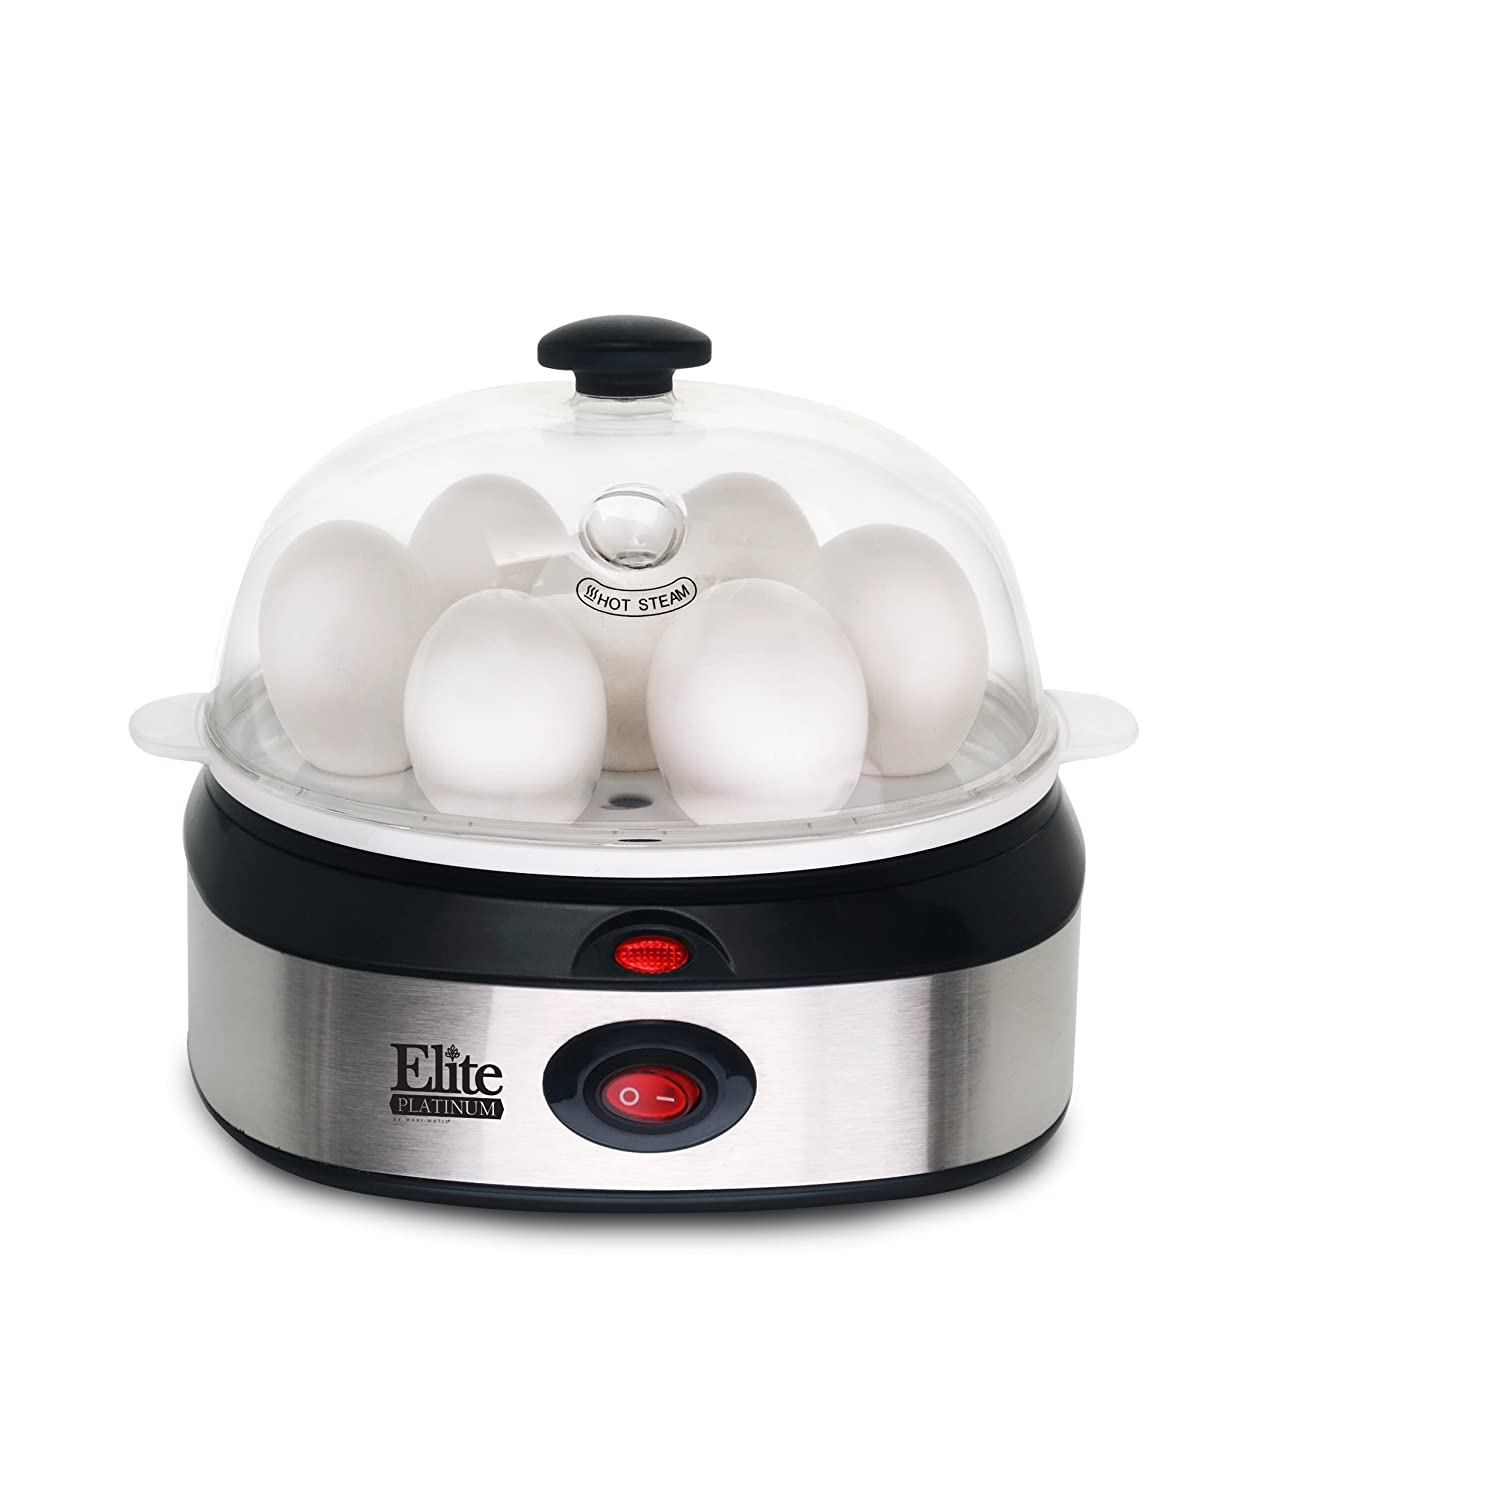 Elite Platinum EGC-207 Maxi-Matic Egg Cooker with 7 Egg Capacity